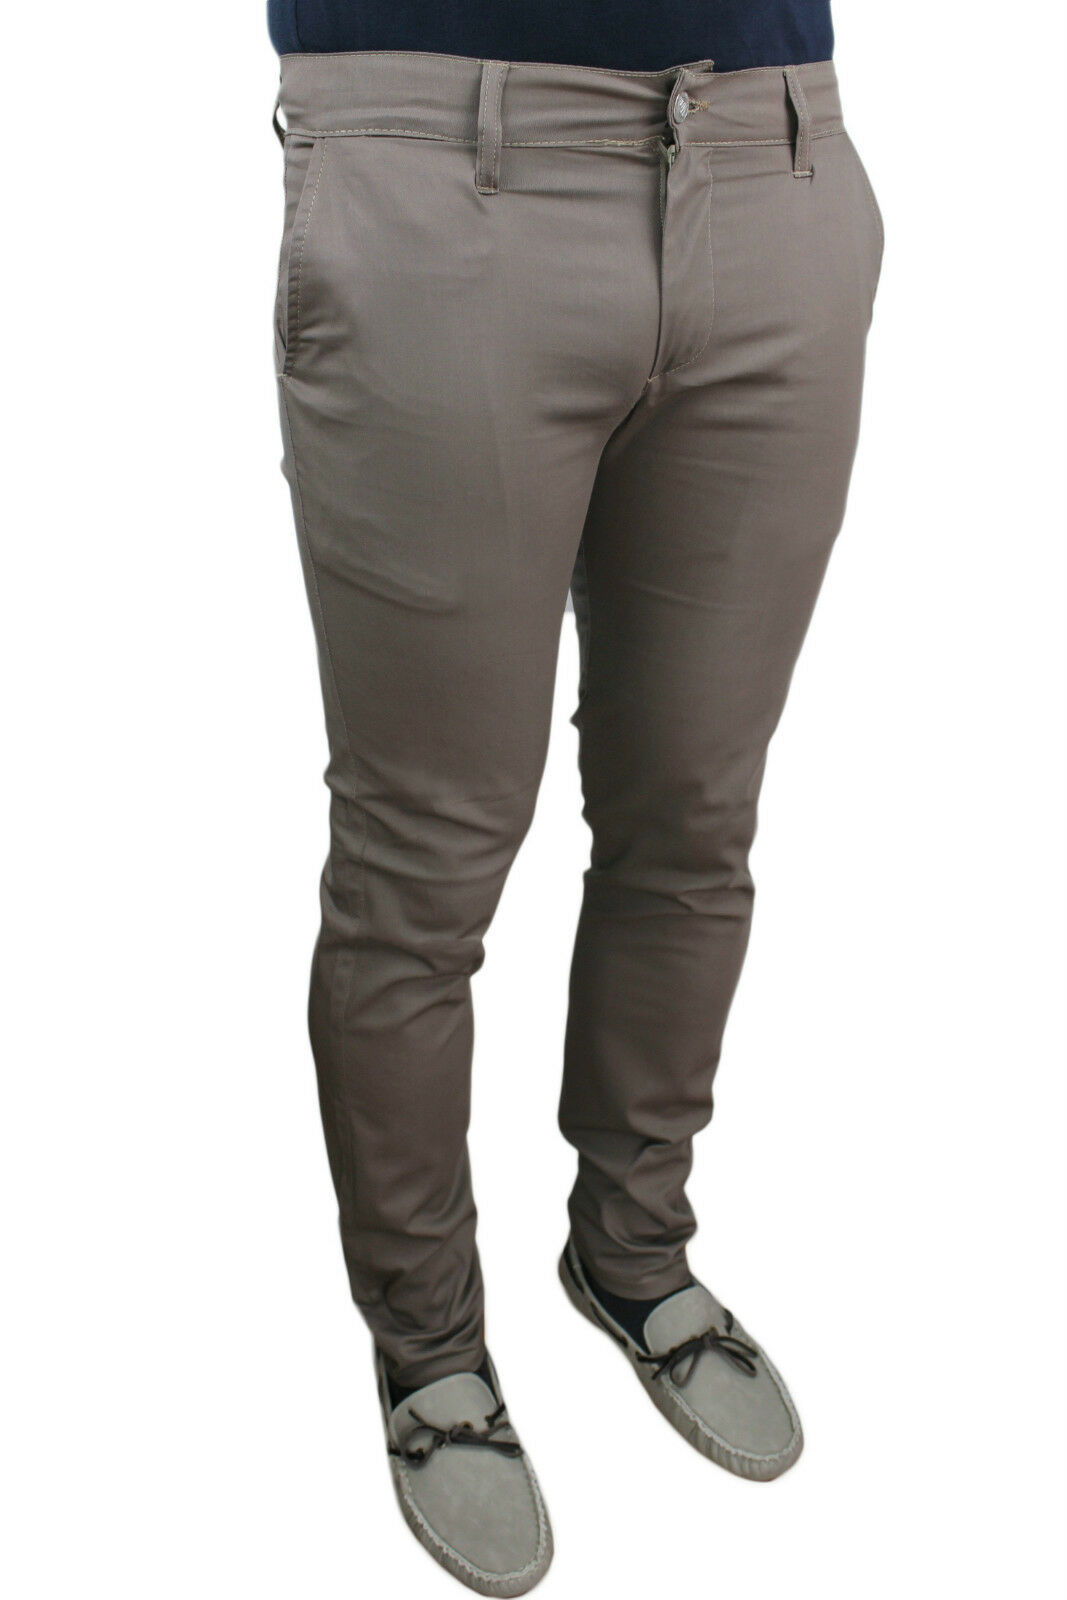 TROUSERS SUMMER MAN BATTISTINI JEANS BEIGE MUD SARTORIALE SLIM FIT TIGHT